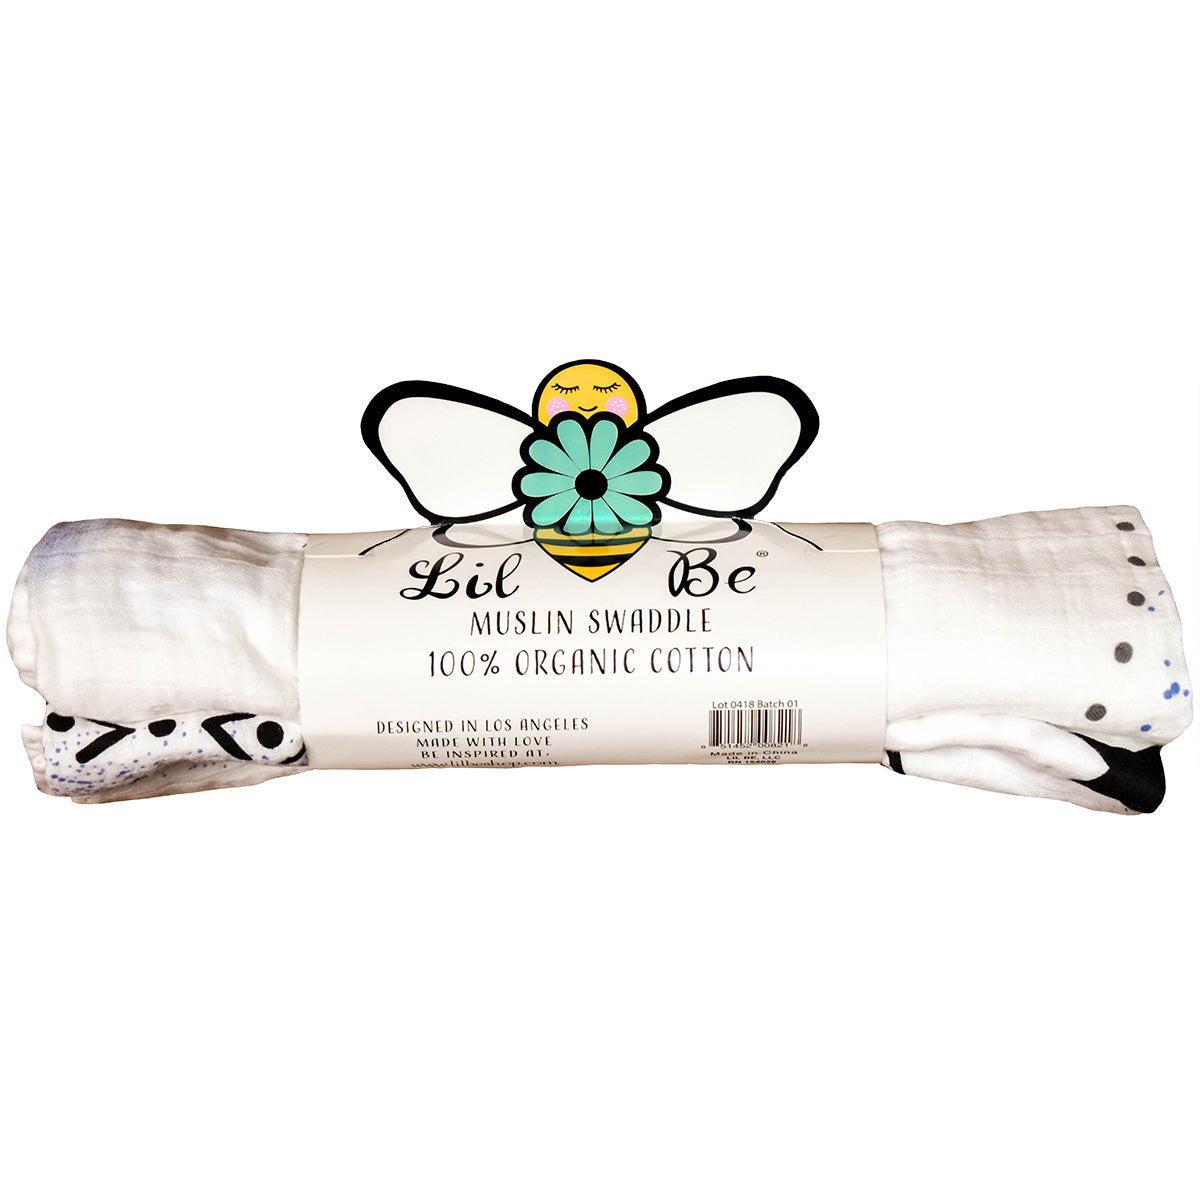 Organic Moon Swaddle Blanket with Back Lil Be Package View